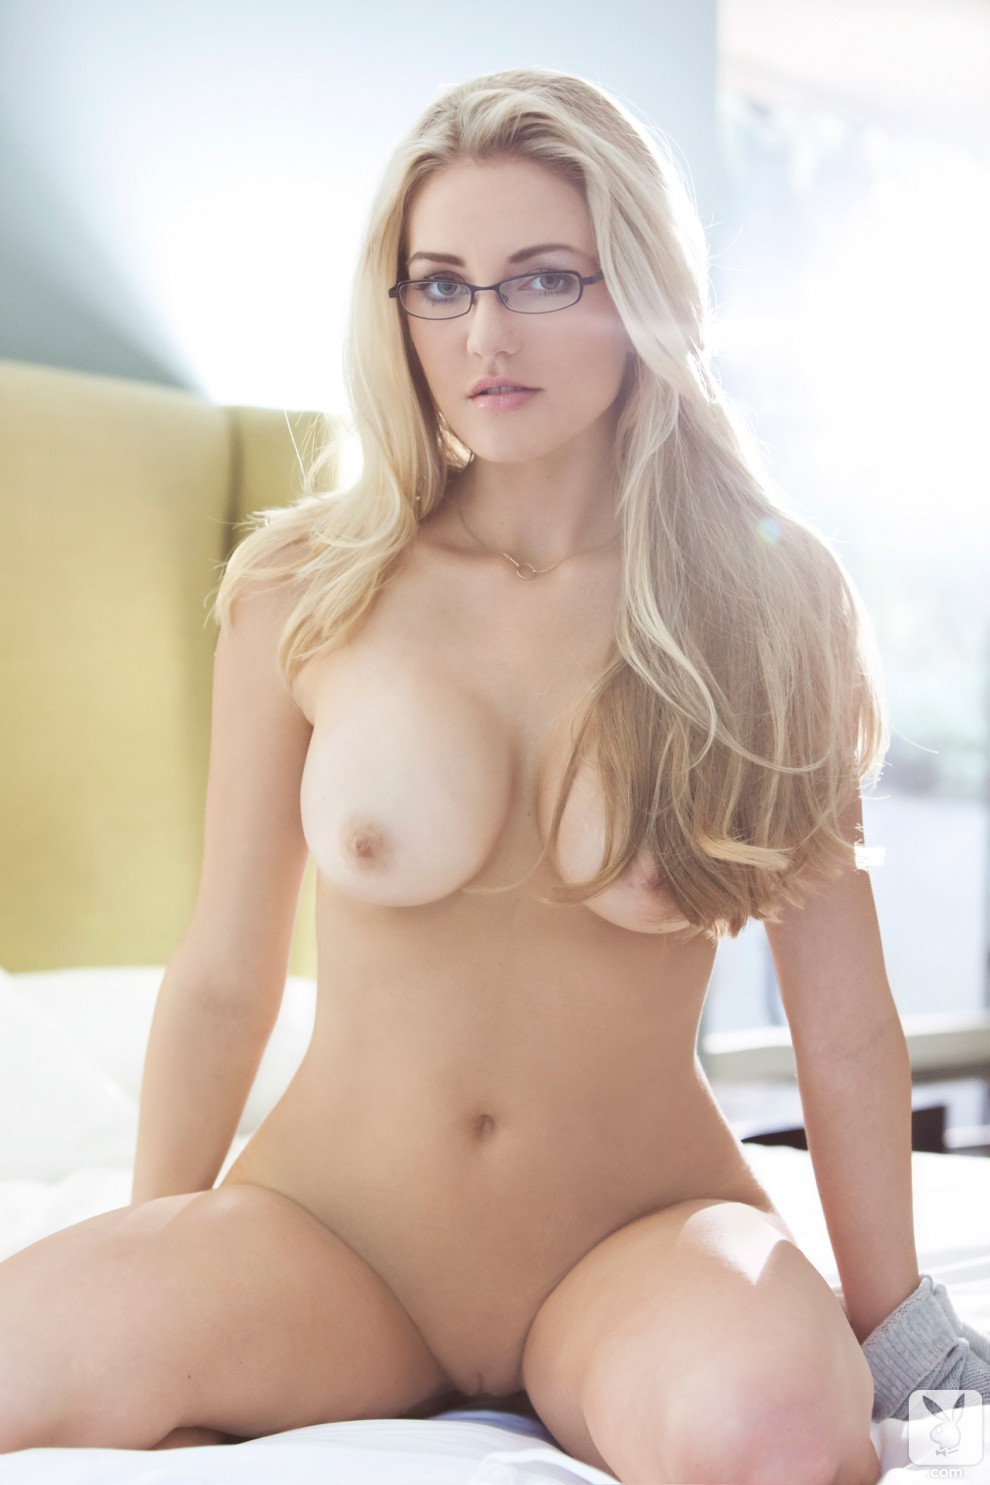 Stephanie Christine nude: